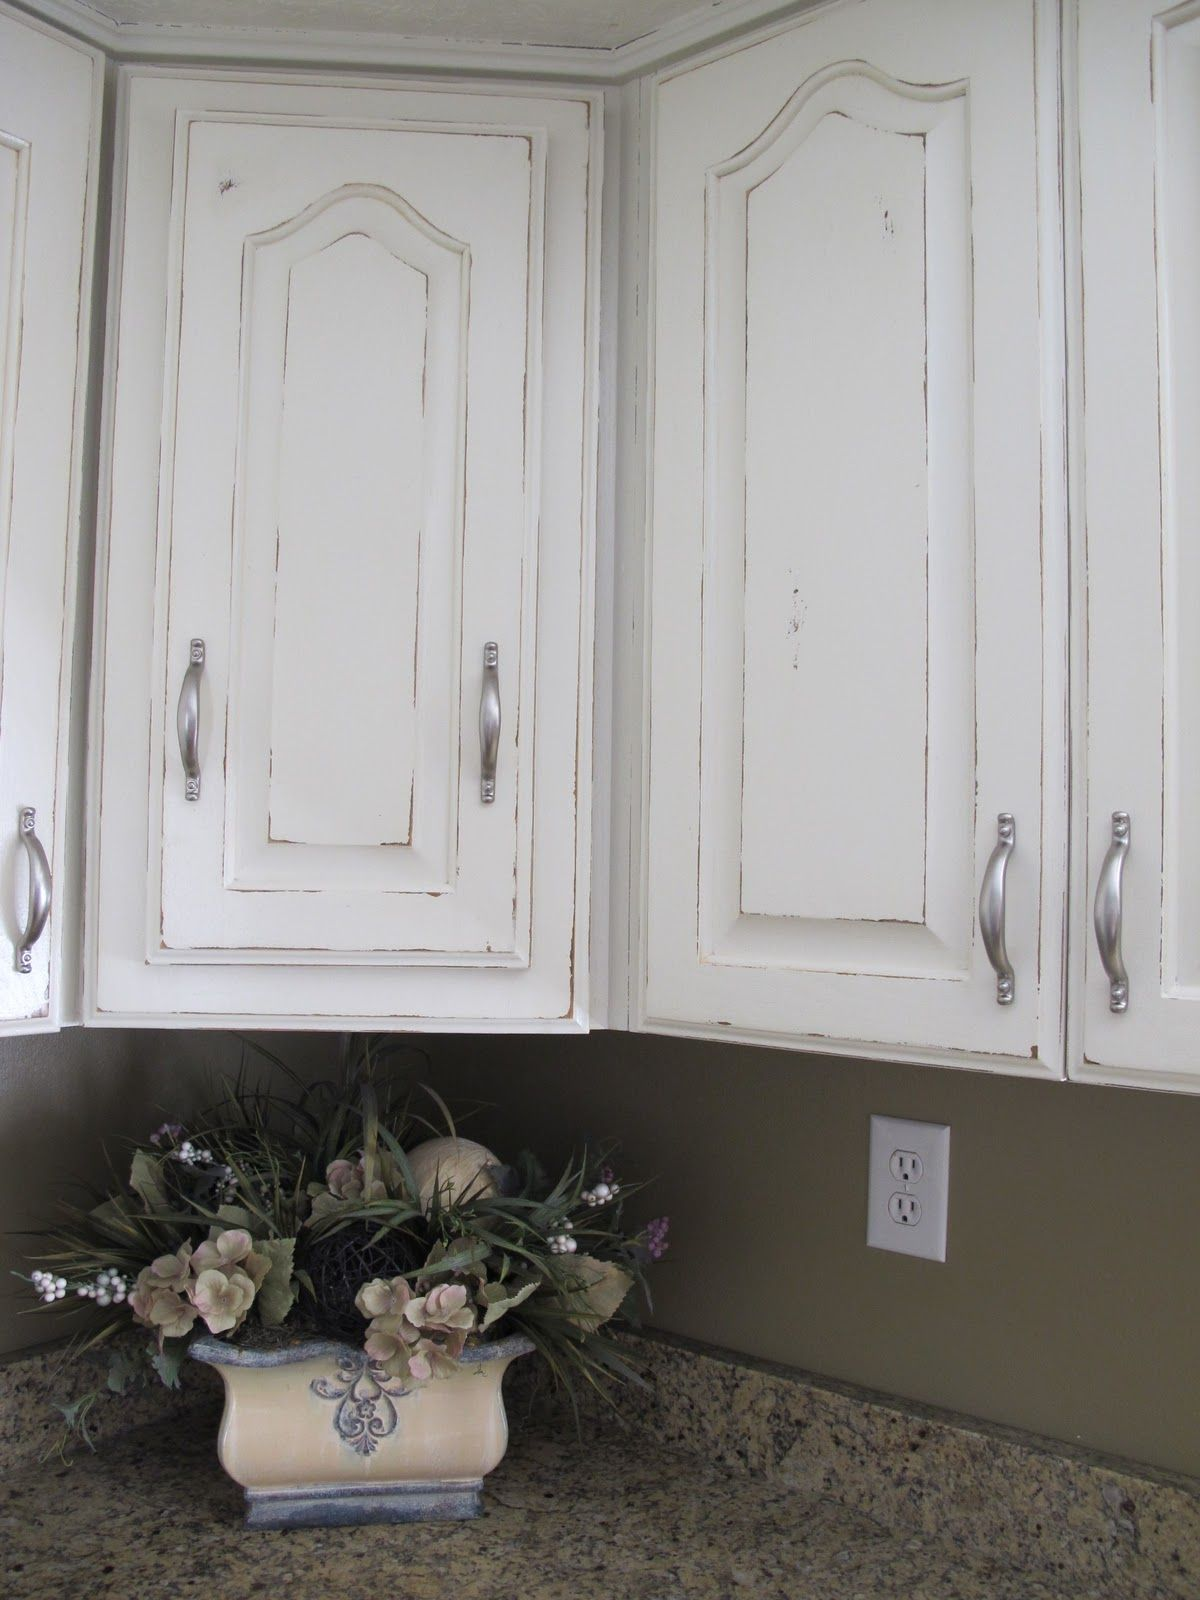 White Distressed Kitchen Cabinets Sink Mats With Drain Hole This Is What My Cupboards Are Going To Look Like